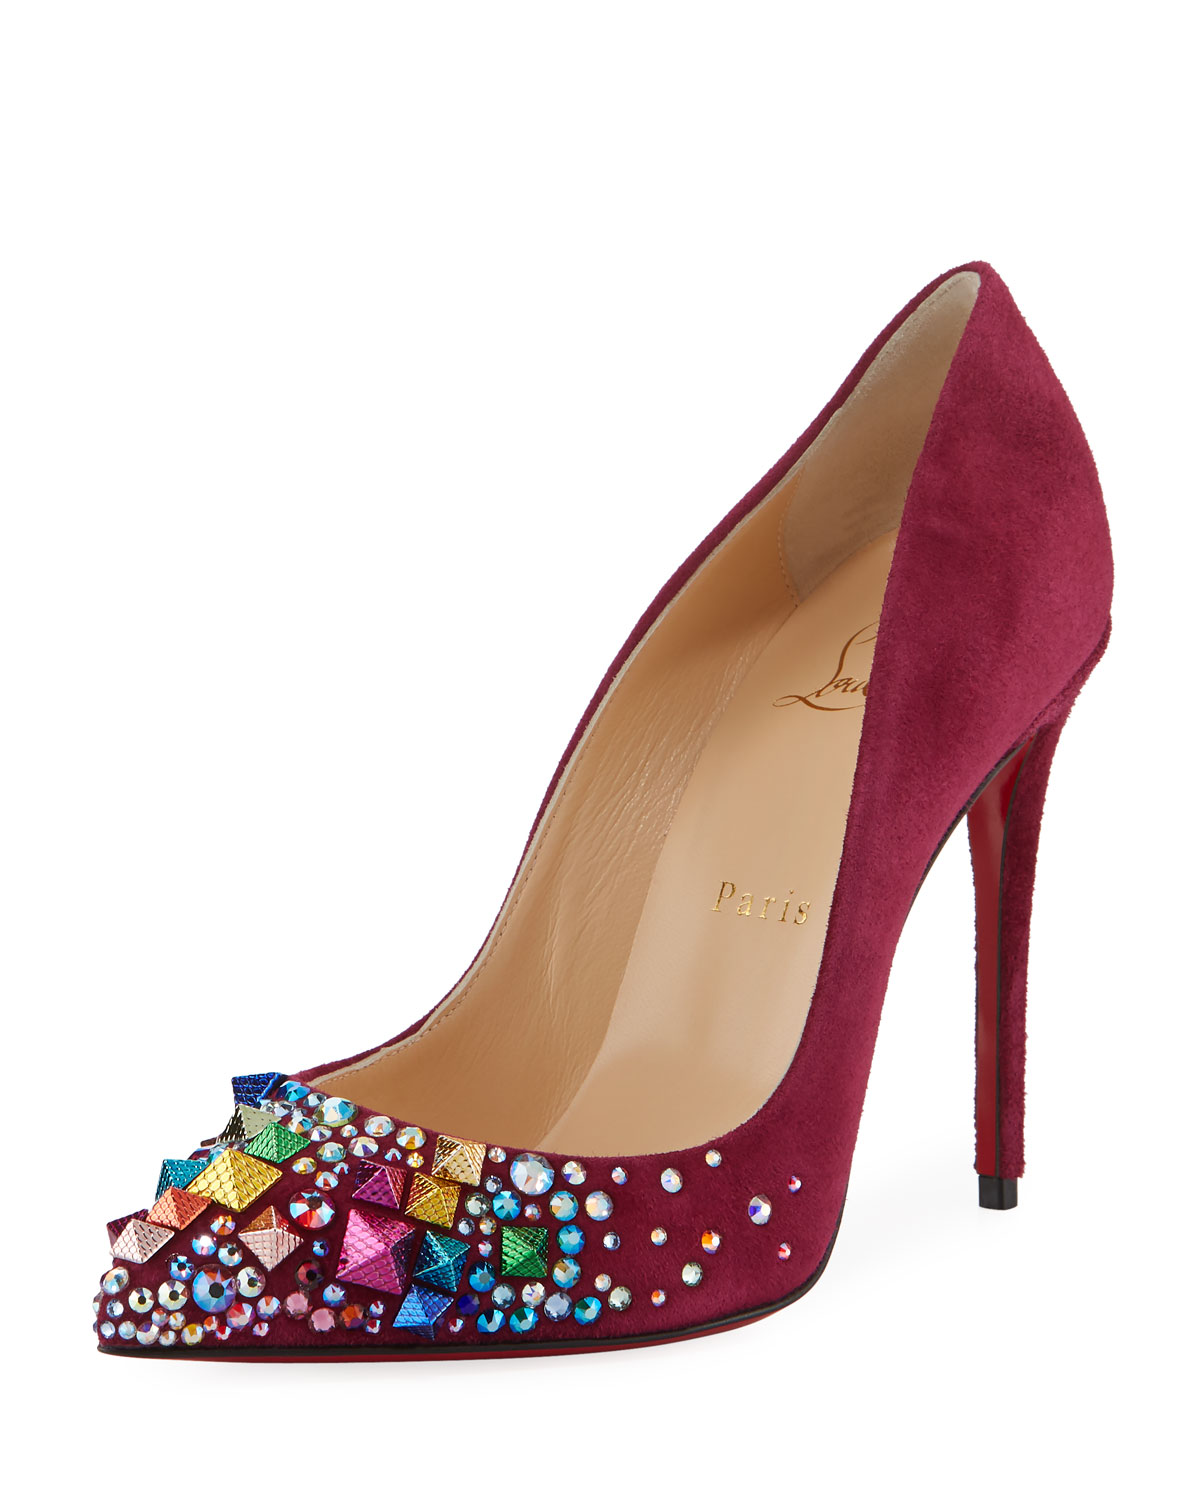 133524b145e2 Christian Louboutin Keopomp Velours Embellished Red Sole Pump ...